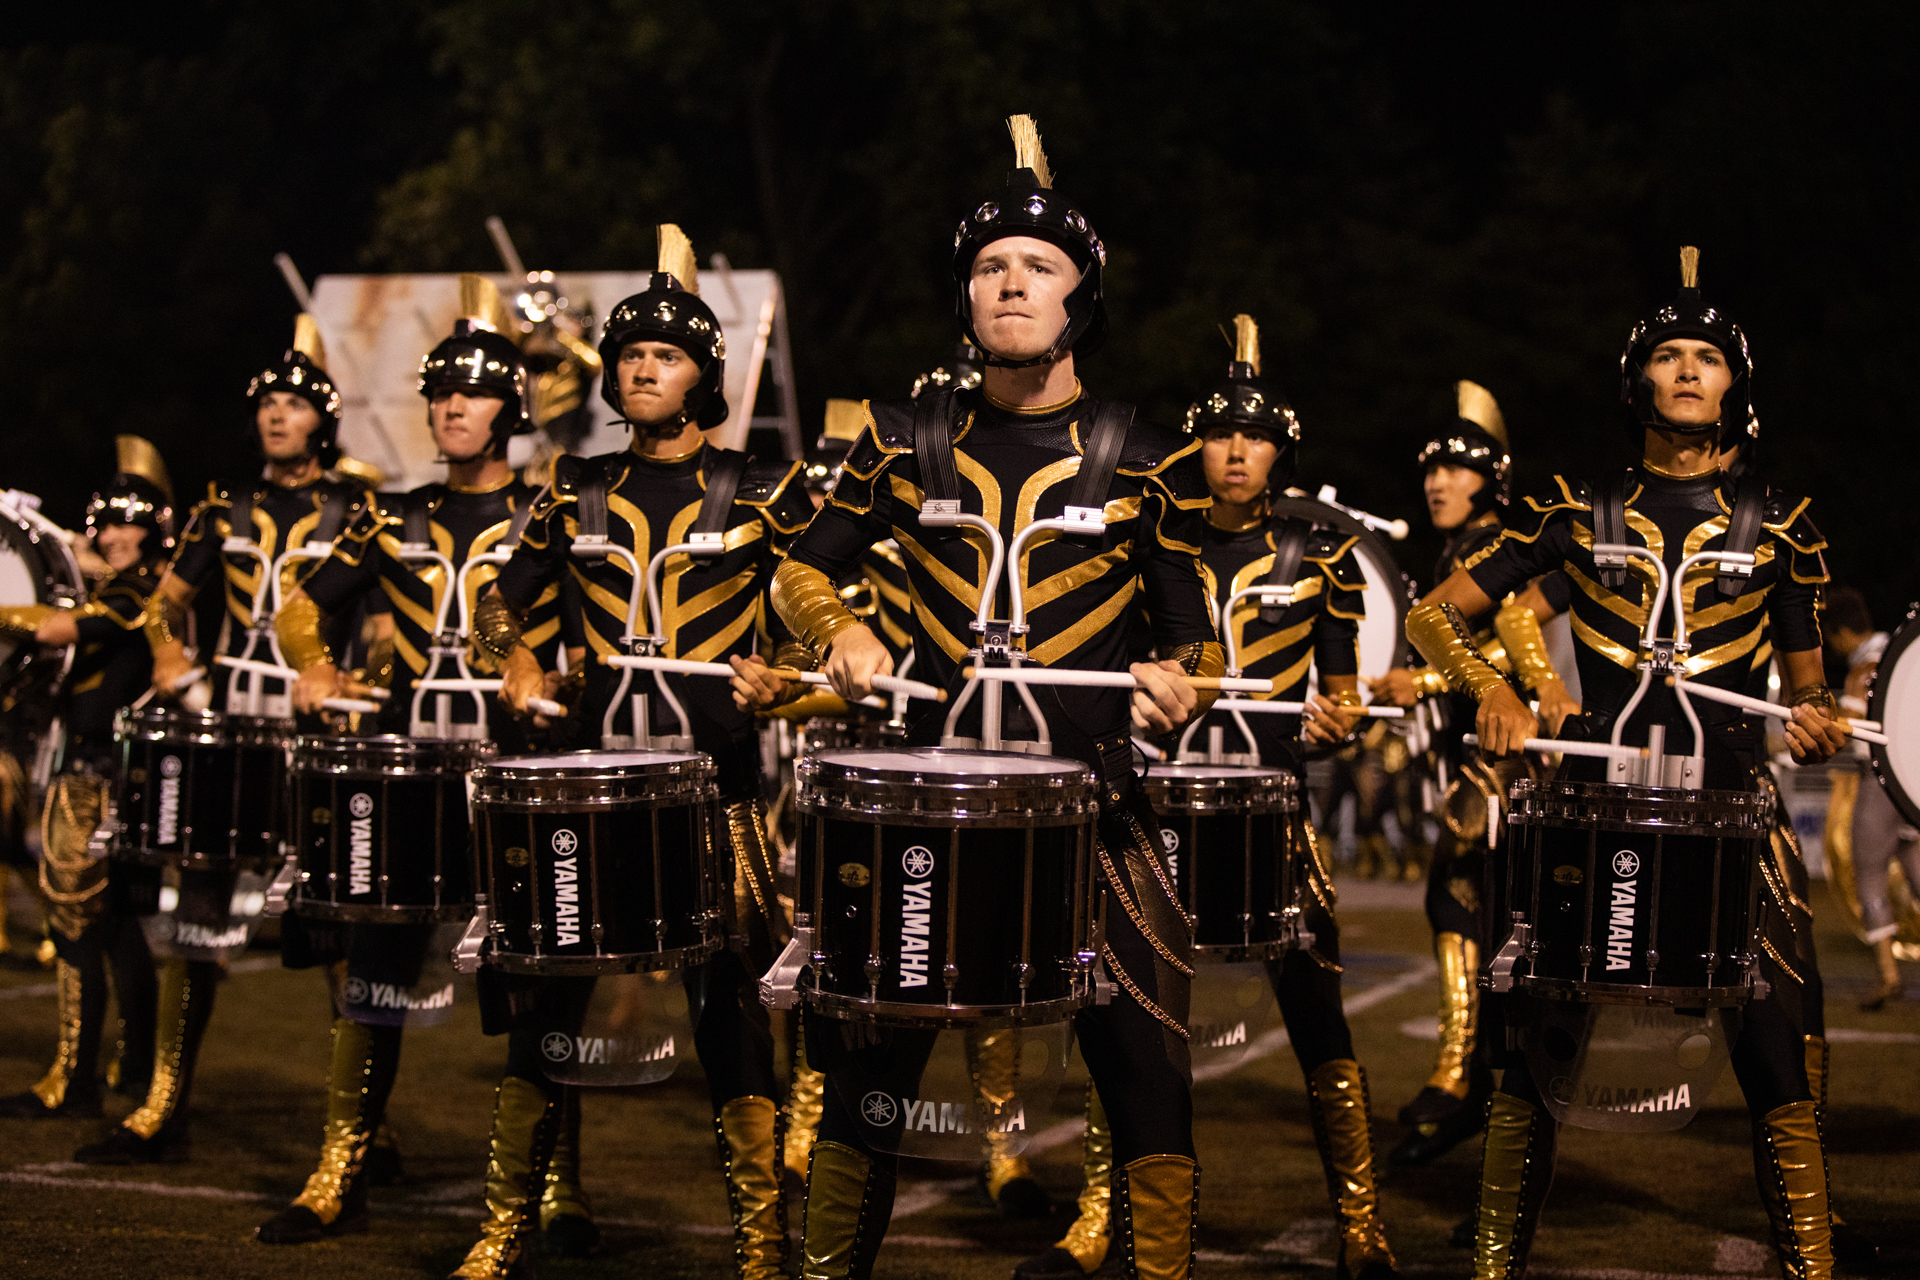 07 - BostonCrusaders2019_Goliath (1 of 9).jpg